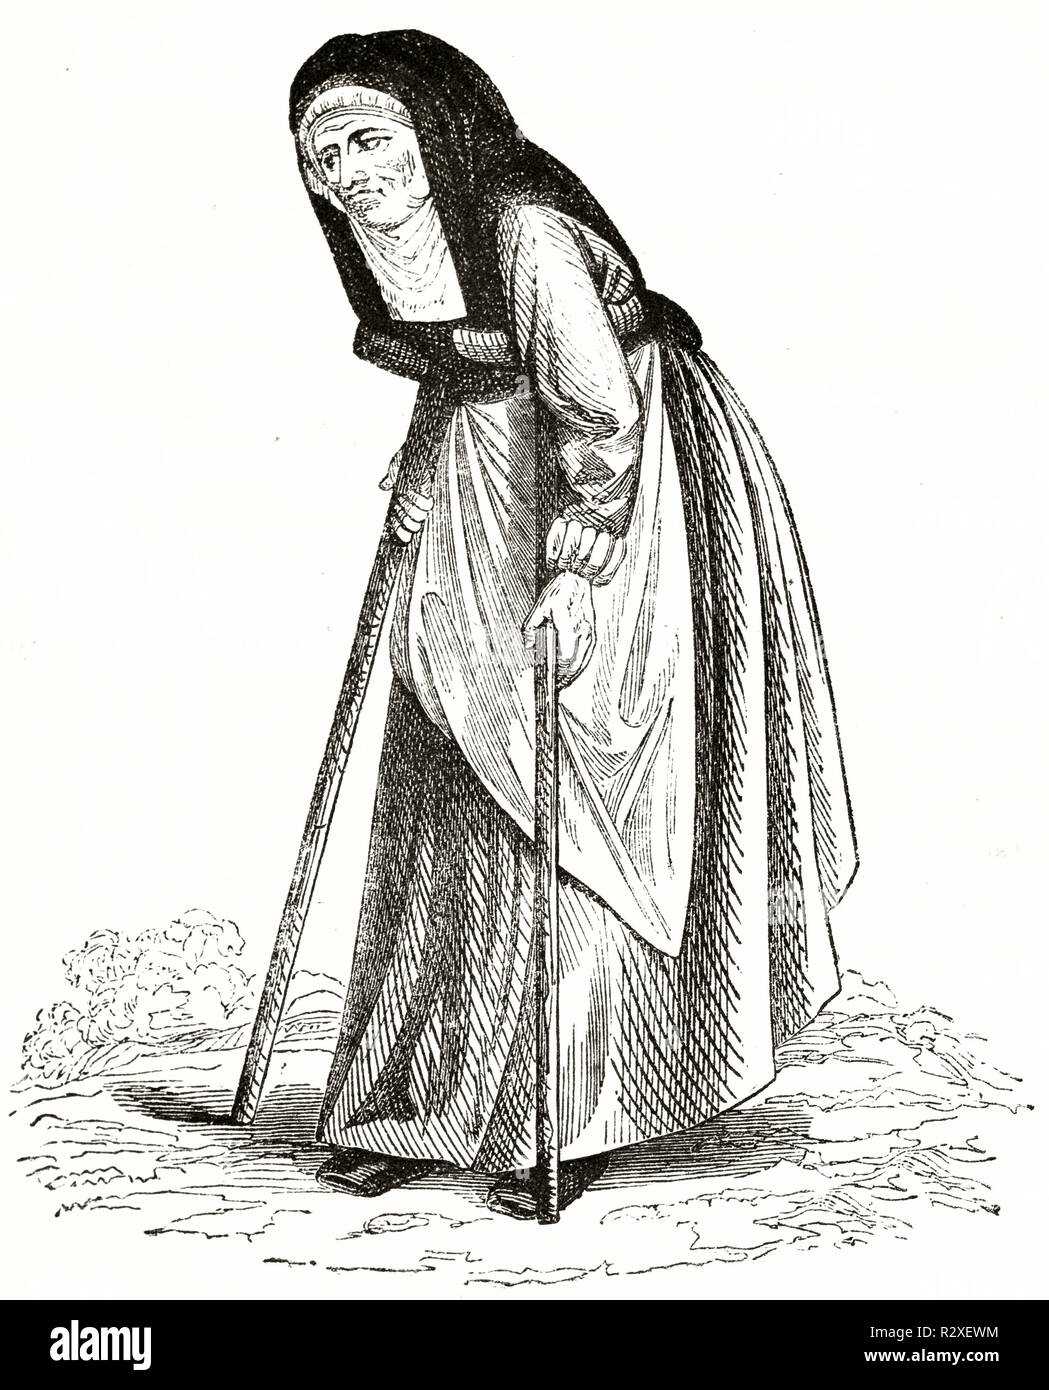 Old illustration depicting elderly woman. By unidentified author, publ. on Magasin Pittoresque, Paris, 1846 - Stock Image